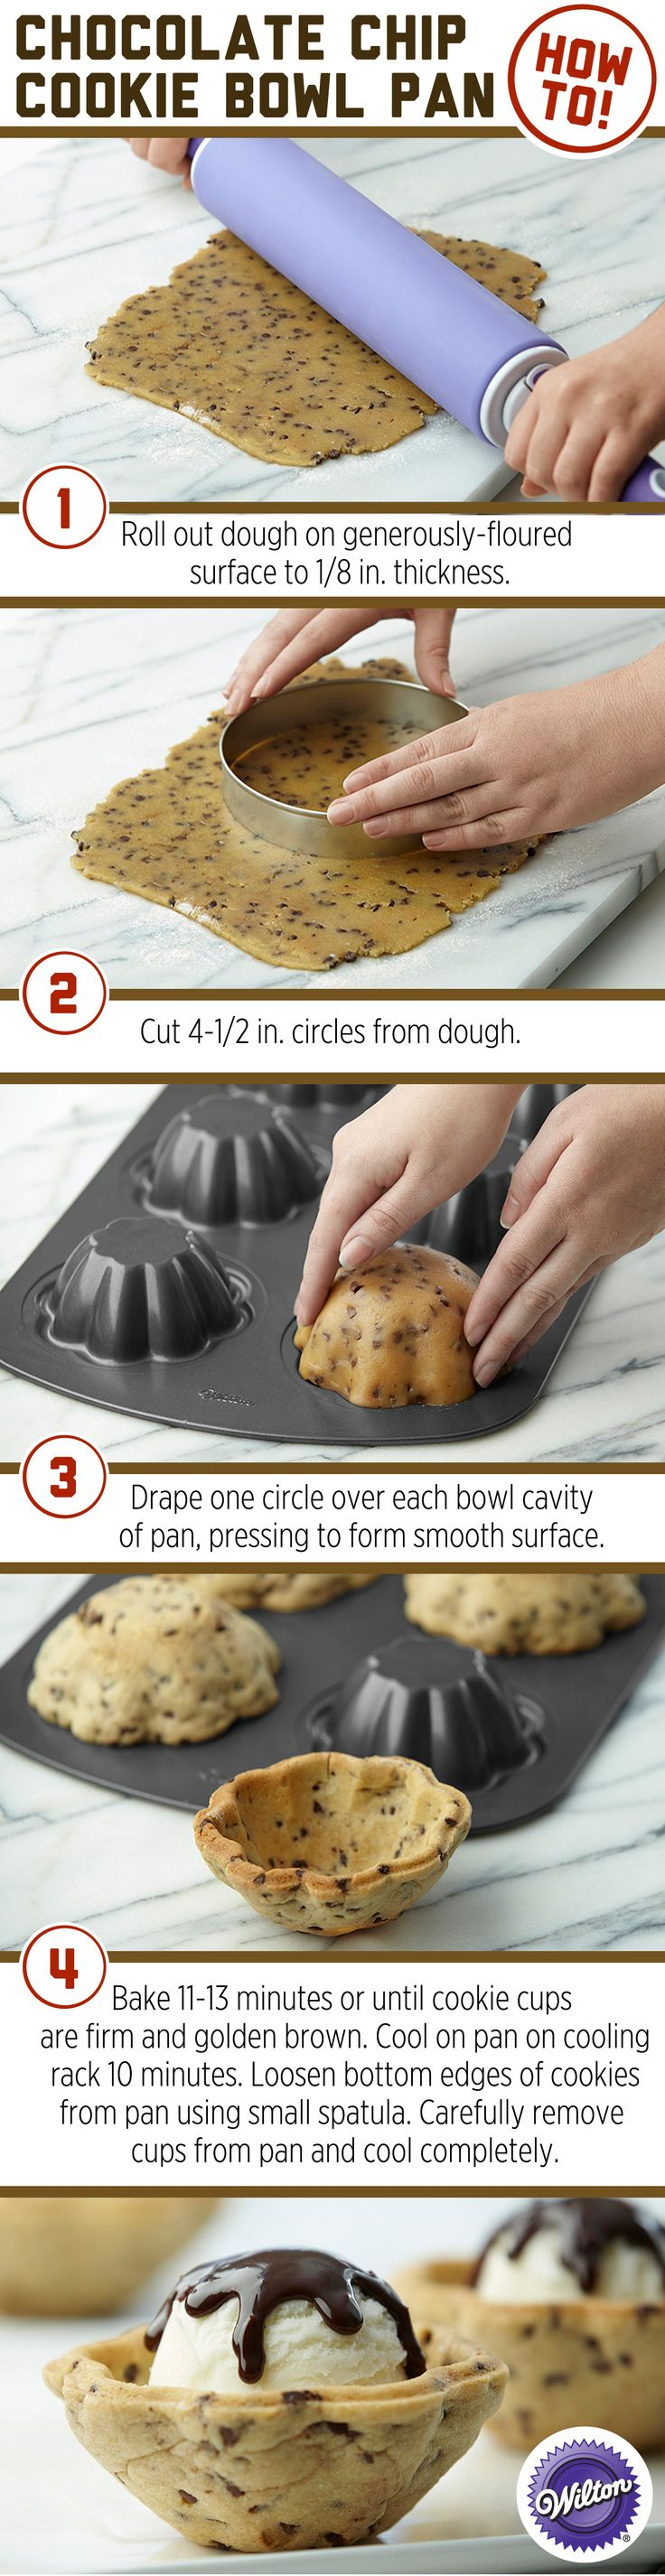 personalised mens leather wallets How to make a Chocolate Chip Cookie Bowl using the Wilton Cookie Bowl Pan